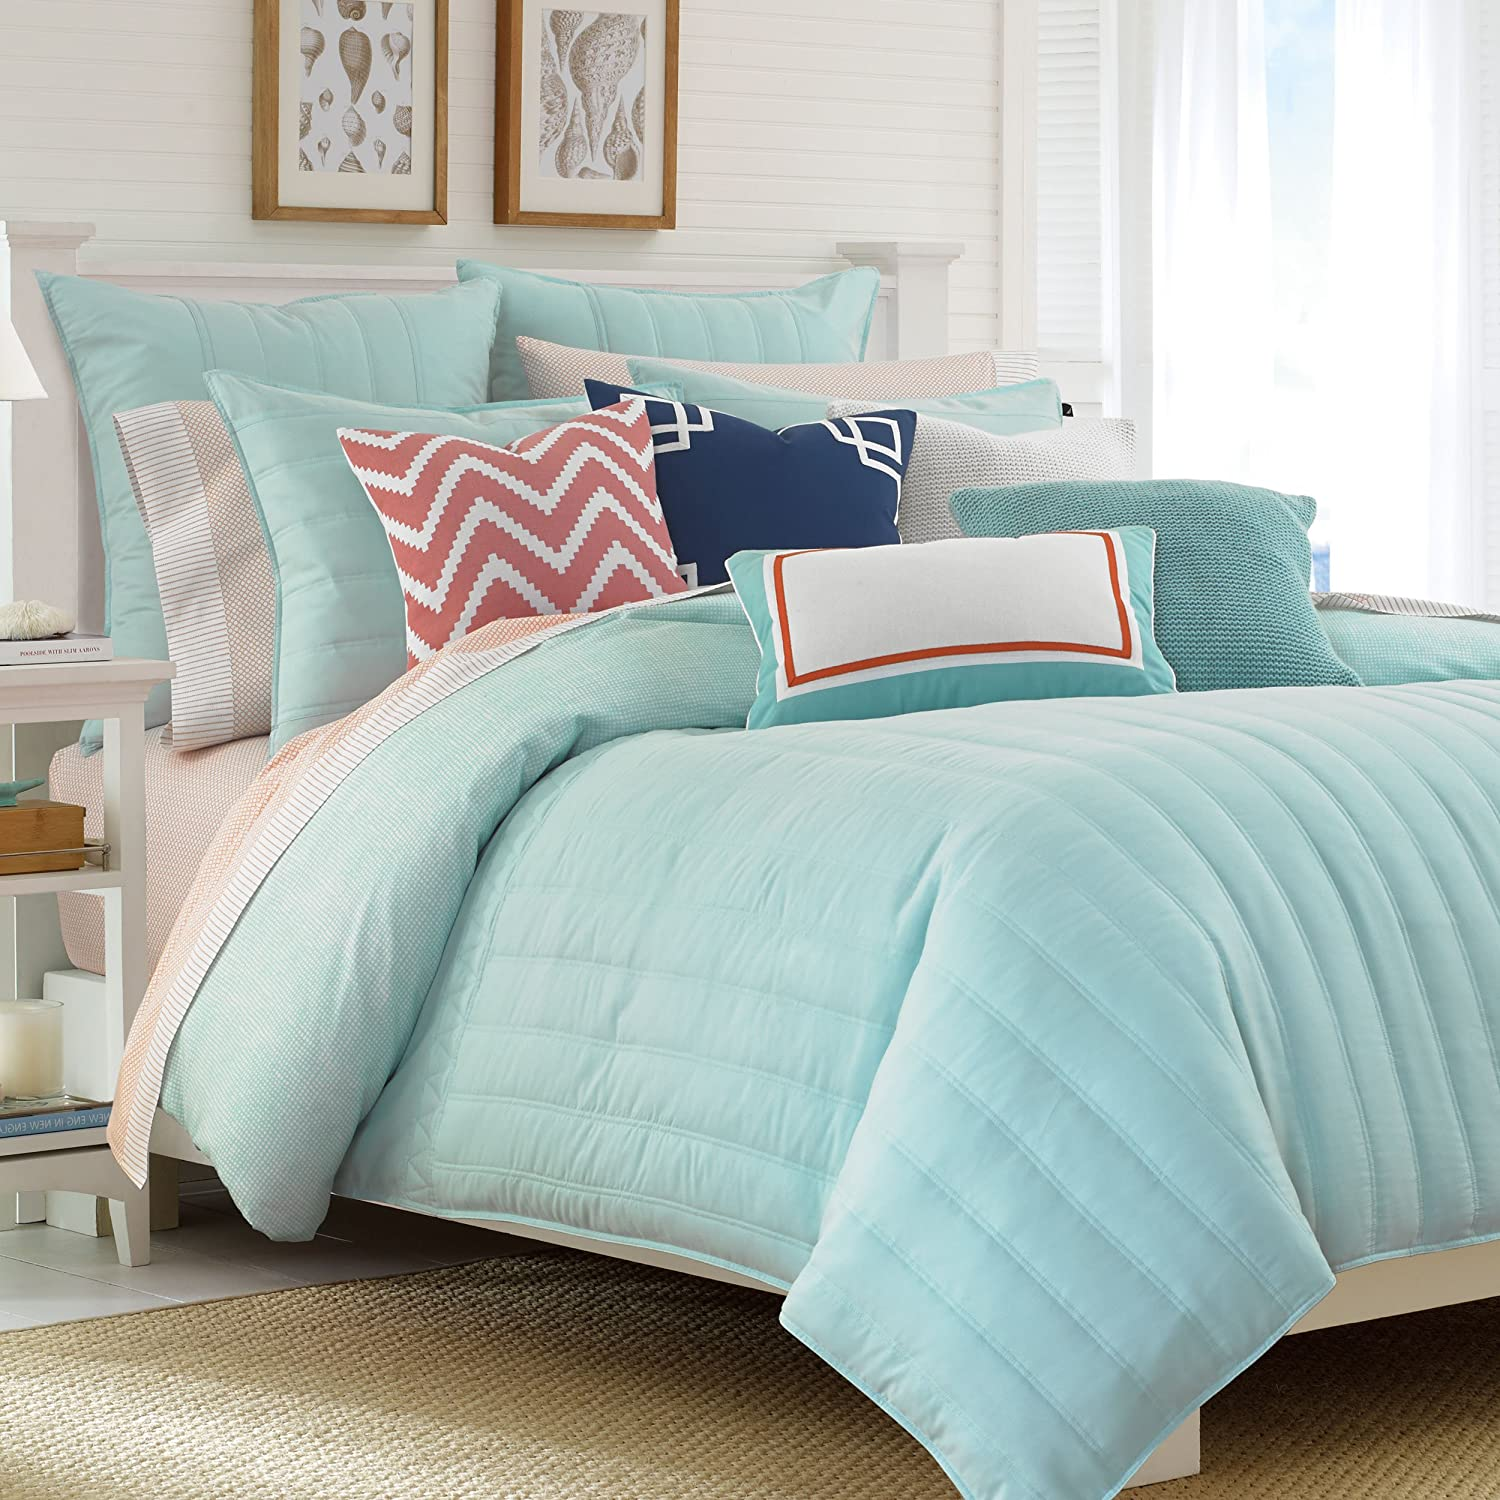 free orders shipping bath bedding park comforter bed set lafayette overstock grey madison on com product